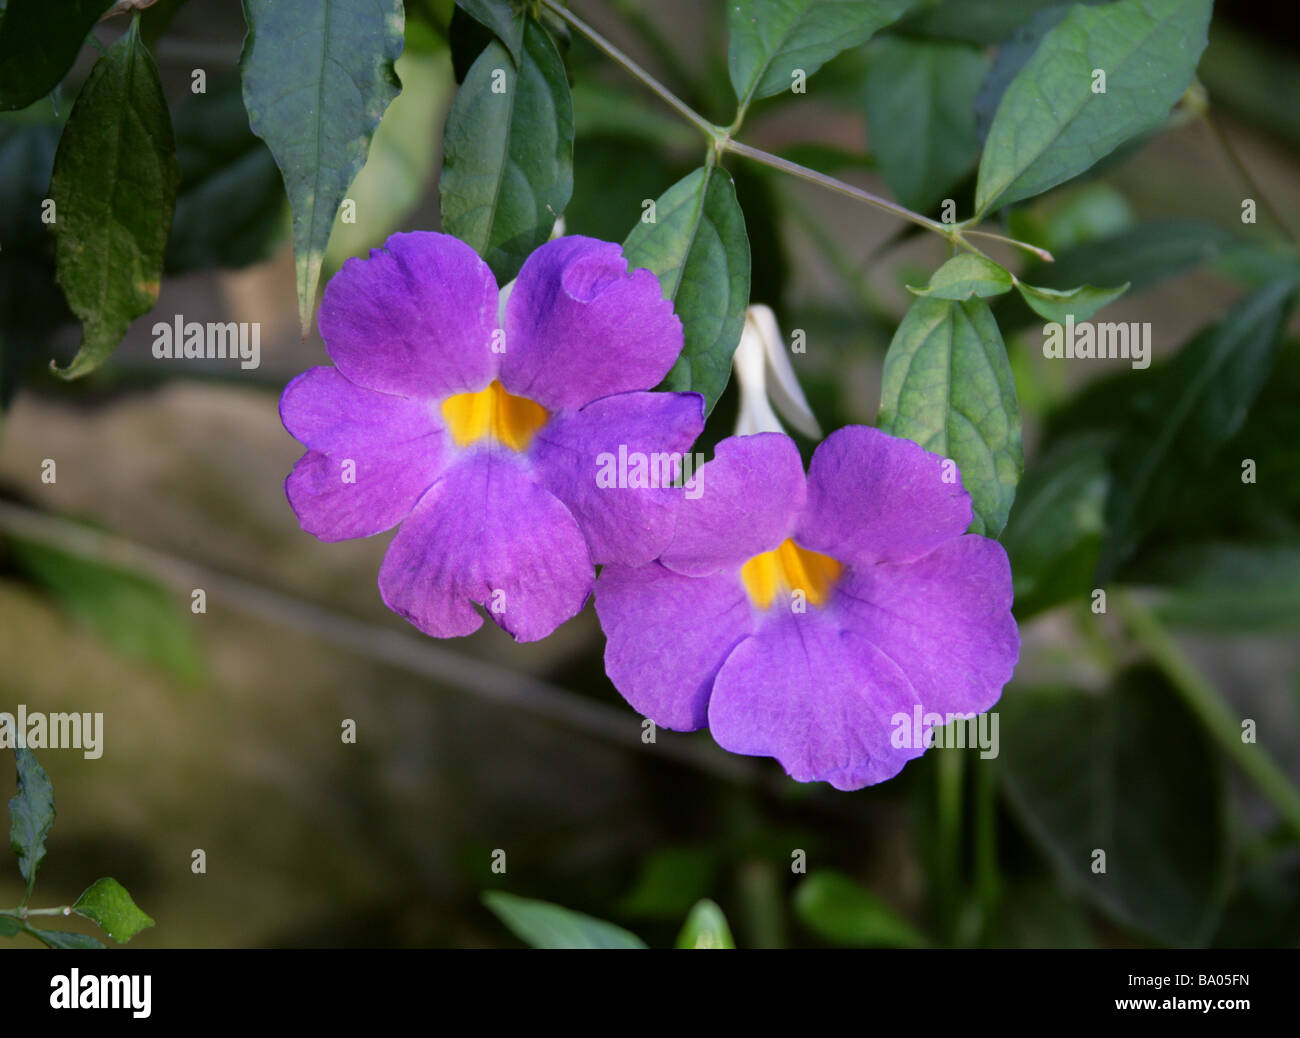 King's Mantle, Thunbergia erecta, Acanthaceae, Tropical West Africa - Stock Image